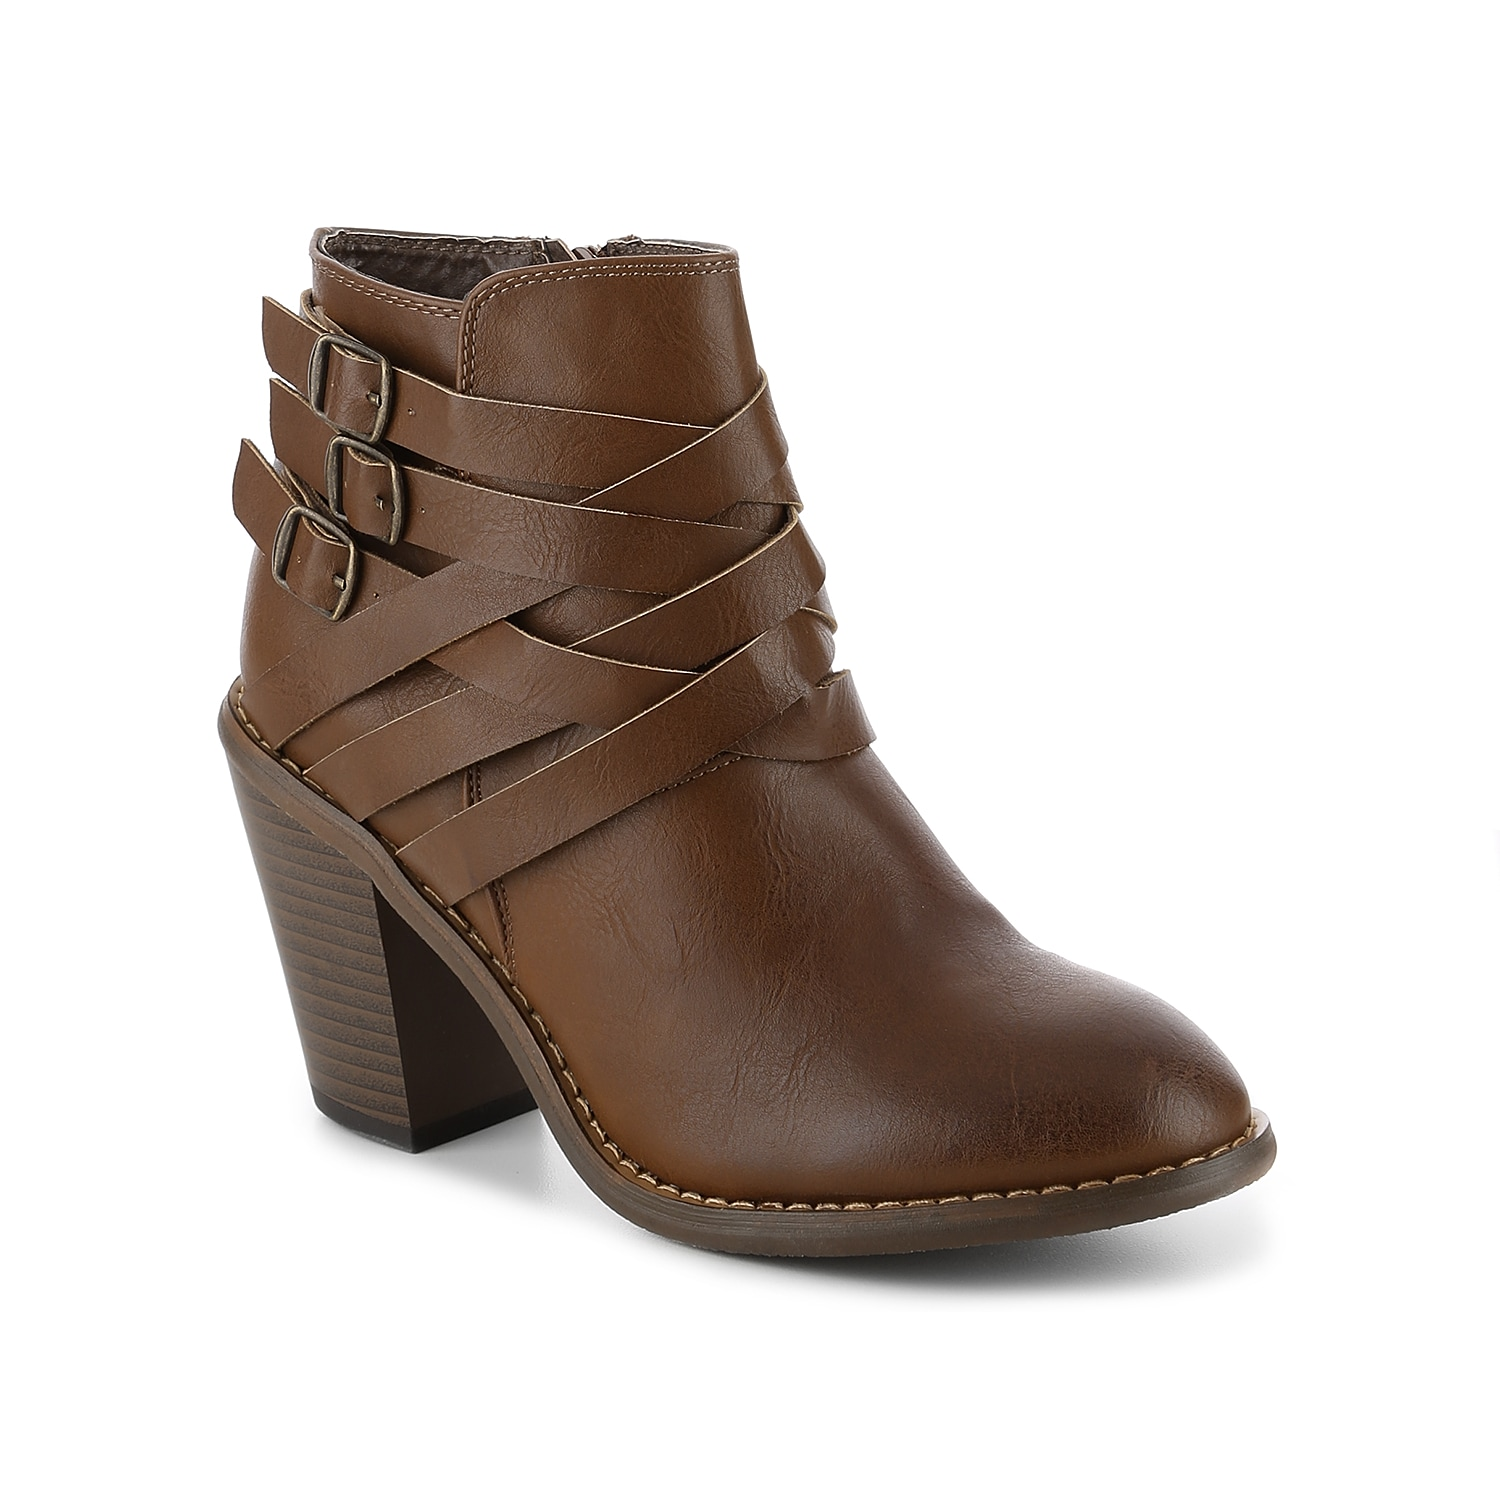 Keep your fall style fresh and fashionable with the Strap ankle boots from Journee Collection! With woven straps and a trendy block heel, these casual booties will polish off any look with effortlessly chic style! Click here for Boot Measuring Guide.